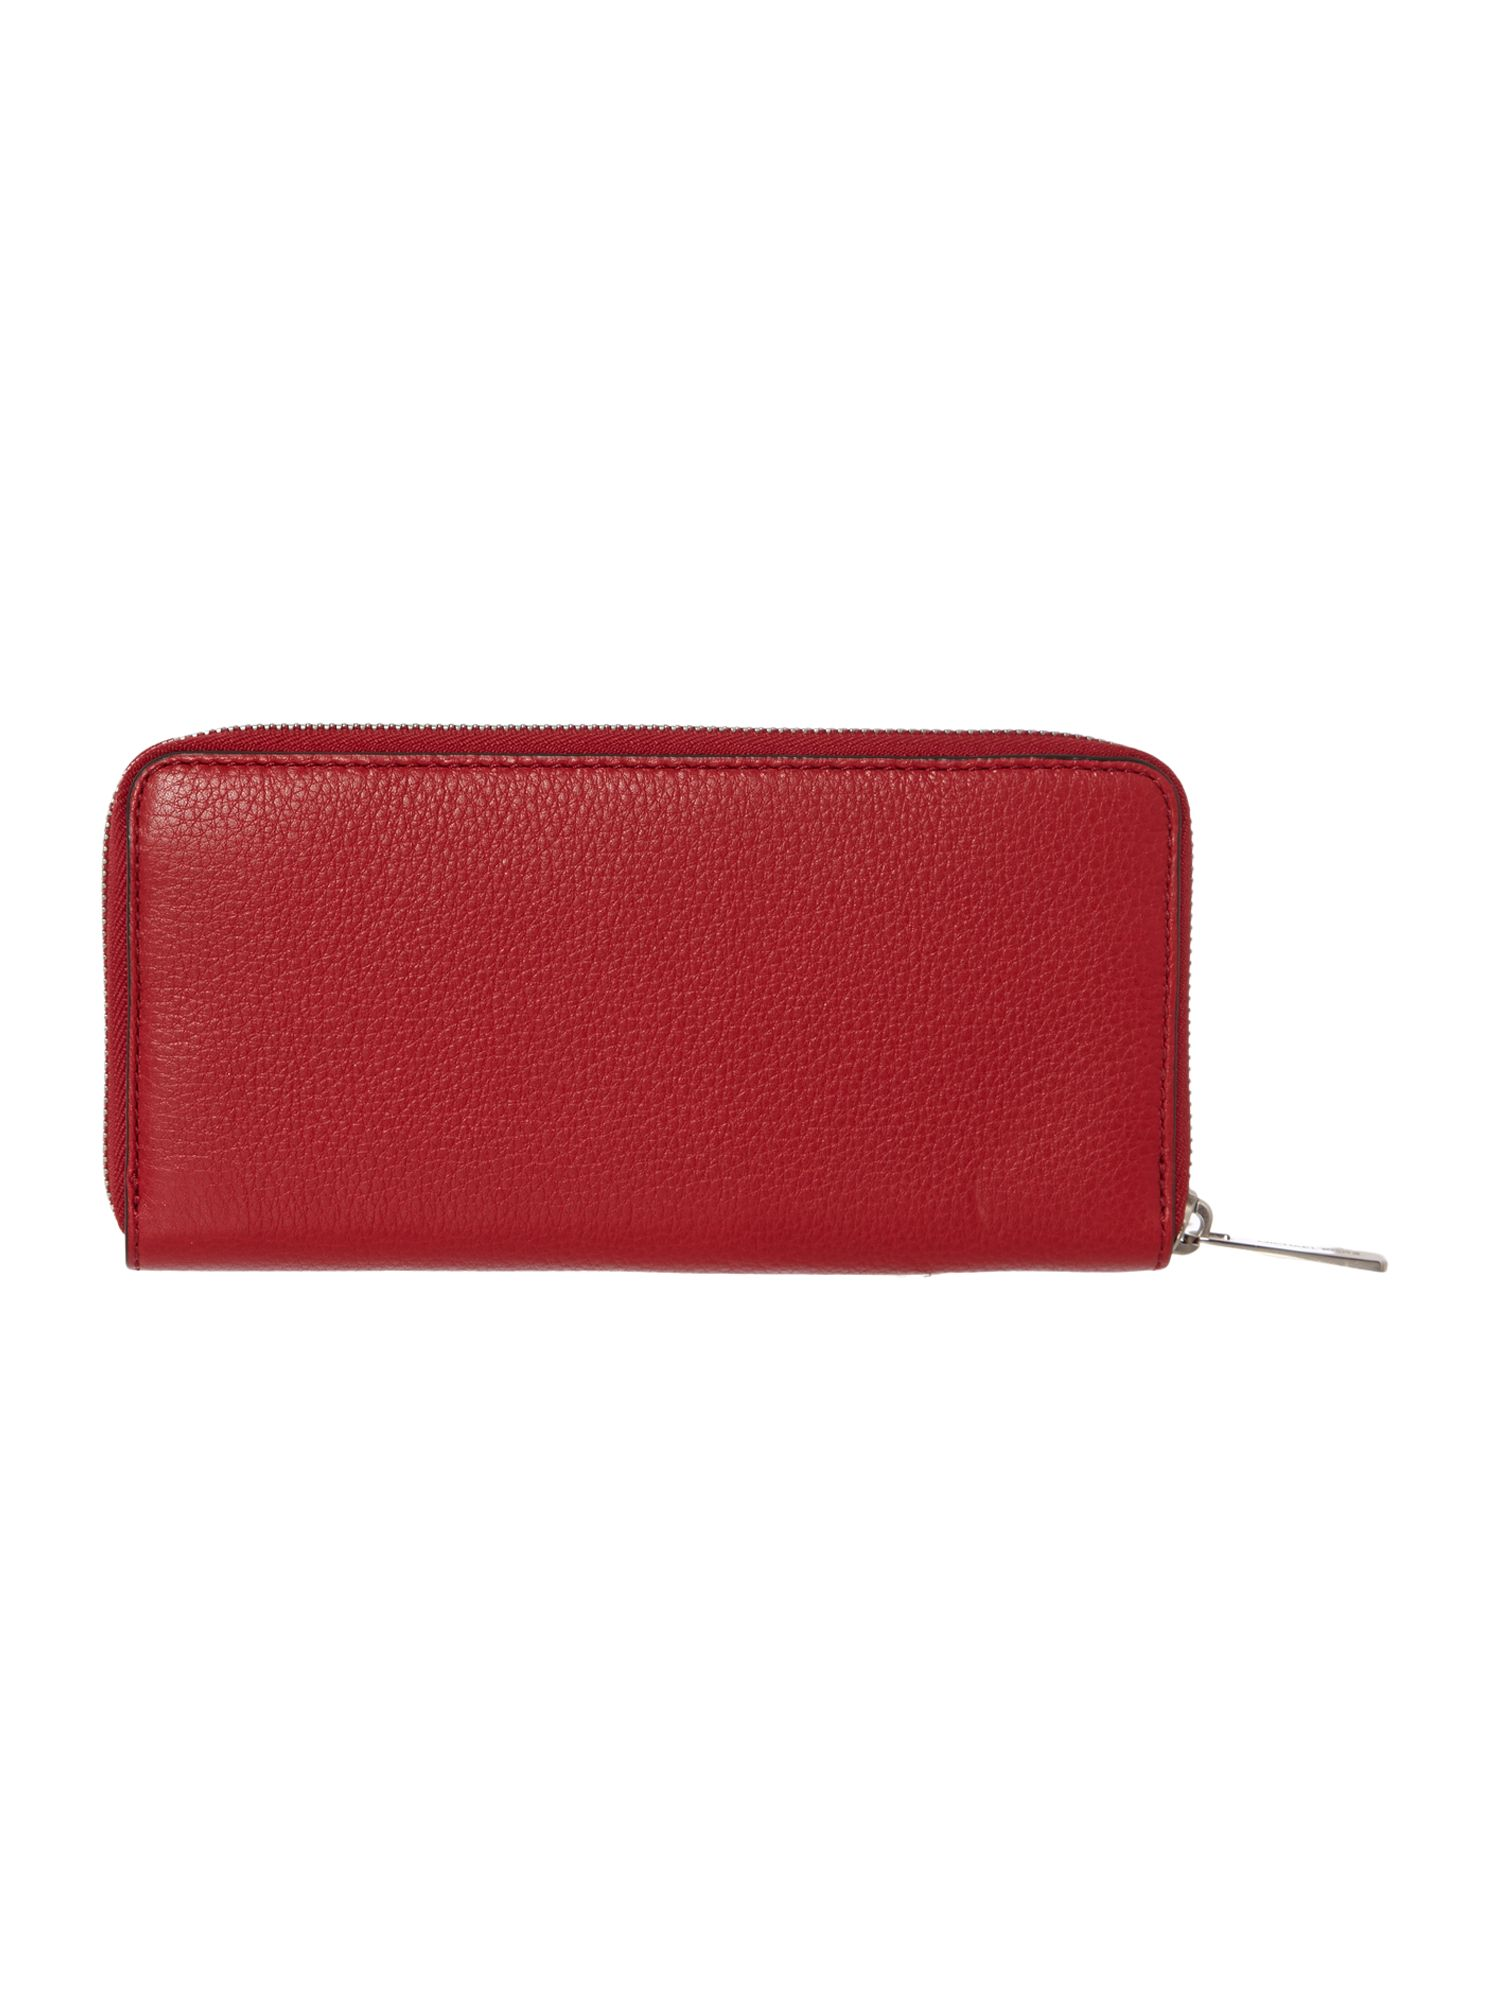 Beford large red zip around purse